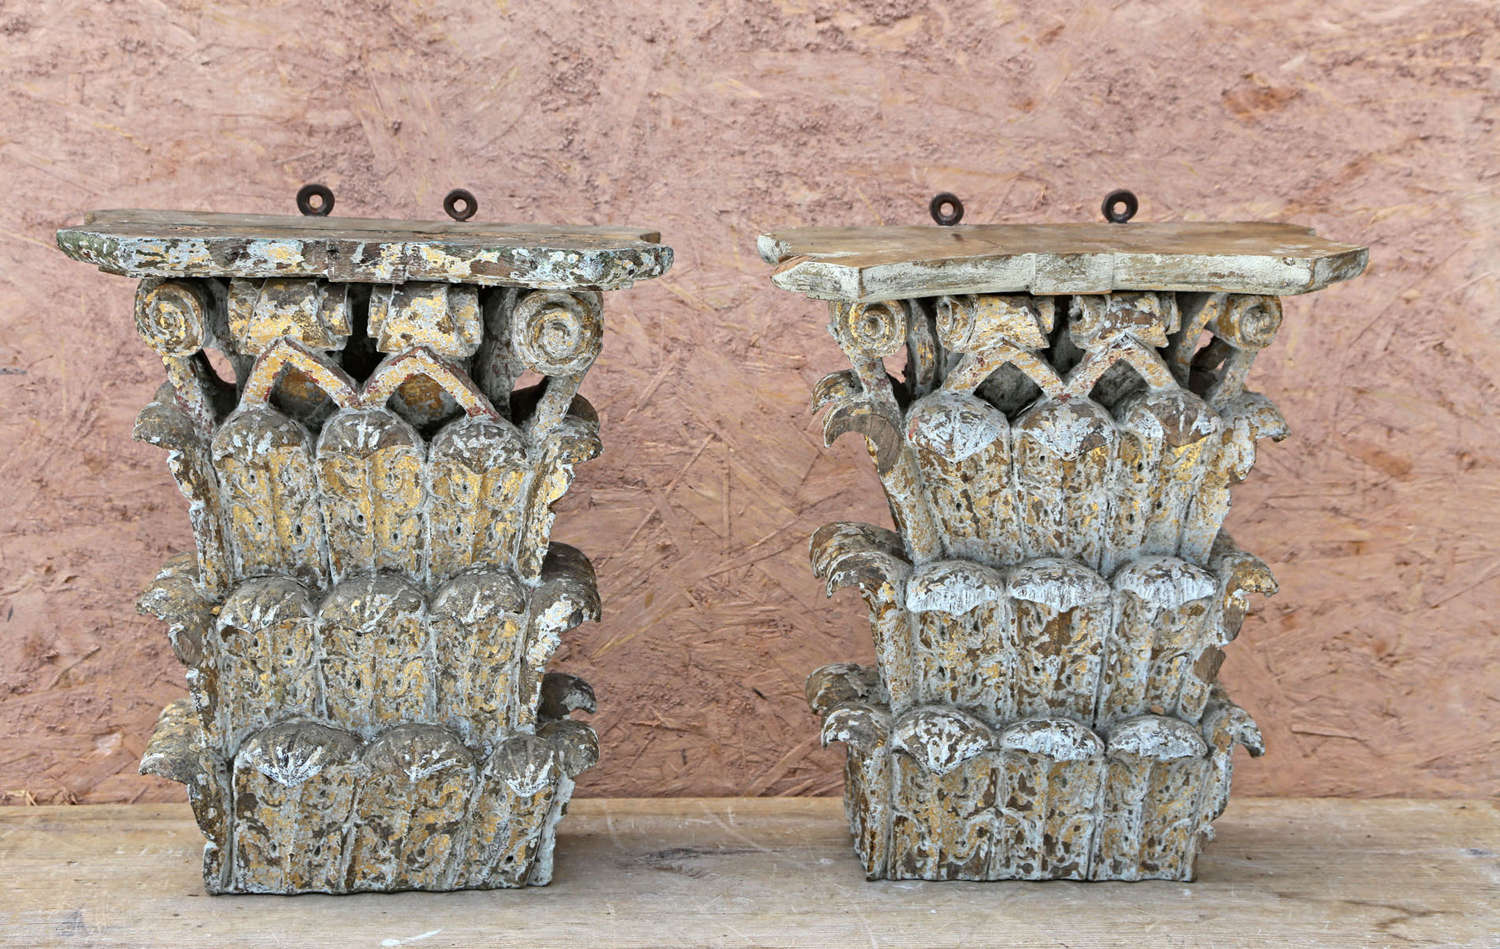 Pair of 18th century Italian carved wooden capitals